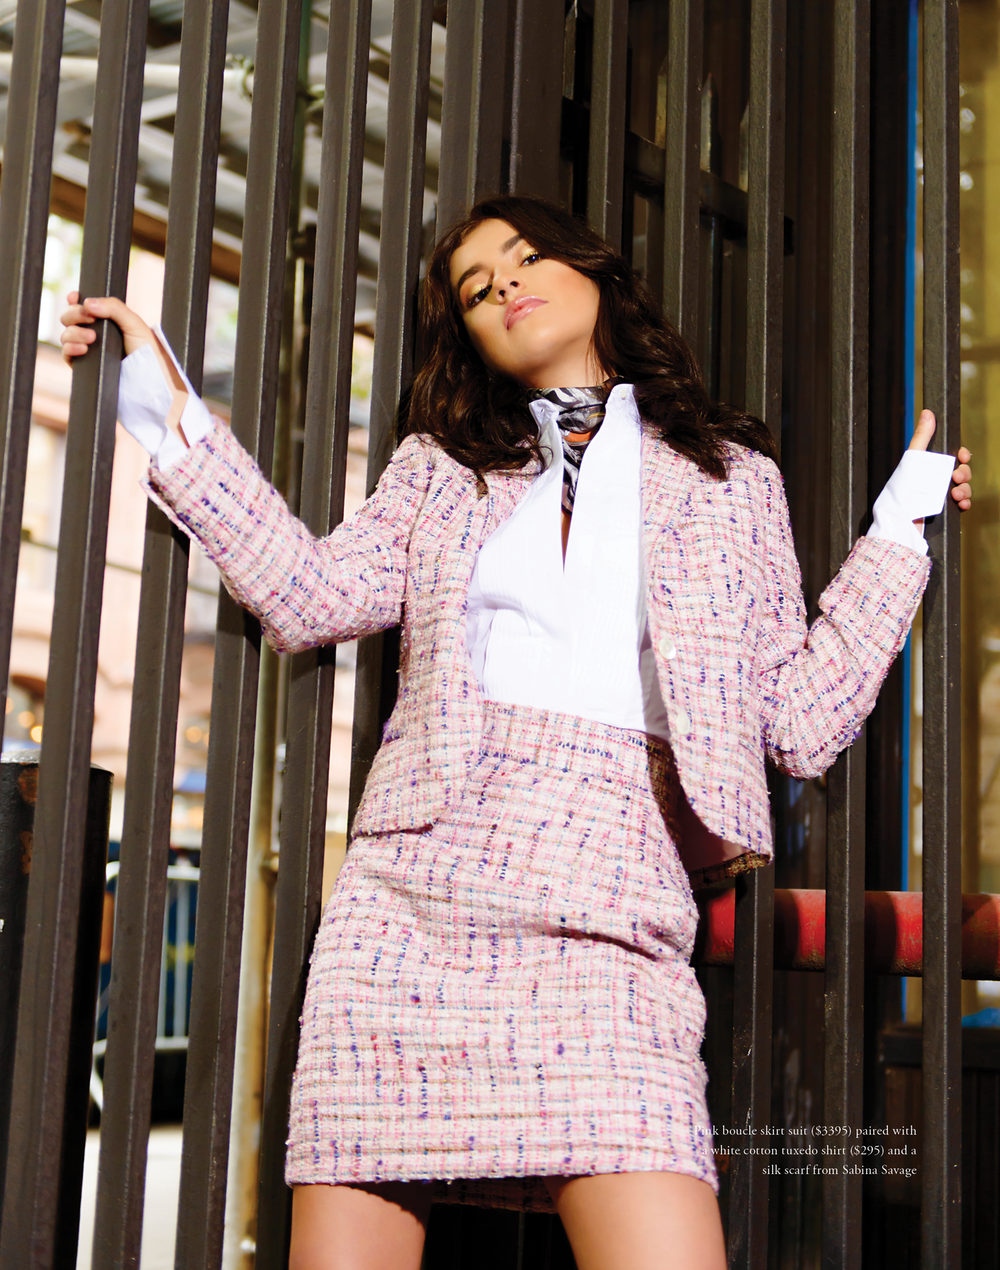 Pink boucle skirt suit ($3395) paired with a white cotton tuxedo shirt ($295) and a silk scarf from Sabina Savage